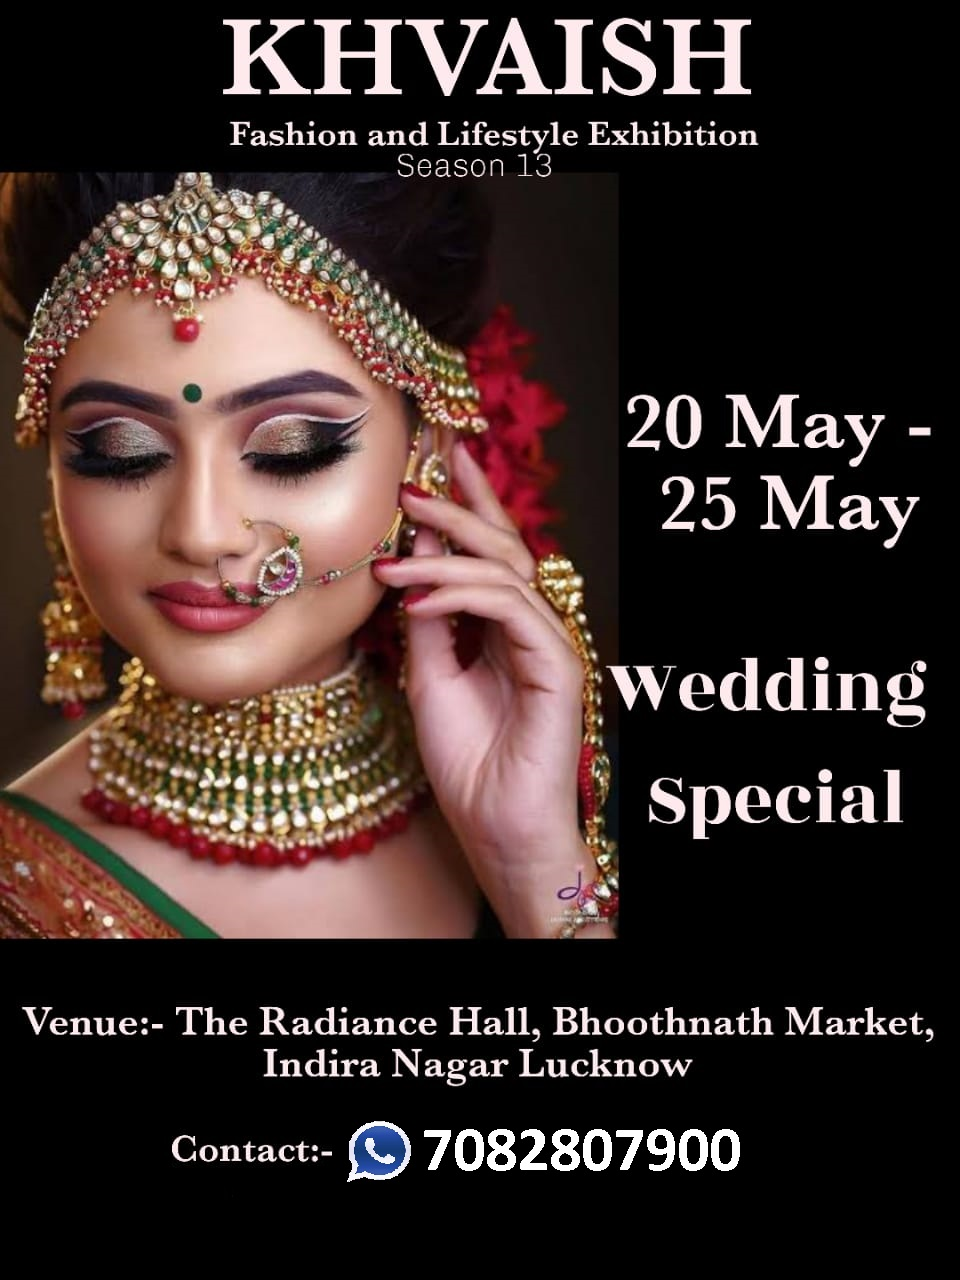 Khvaish Fashion & Lifestyle Exhibition